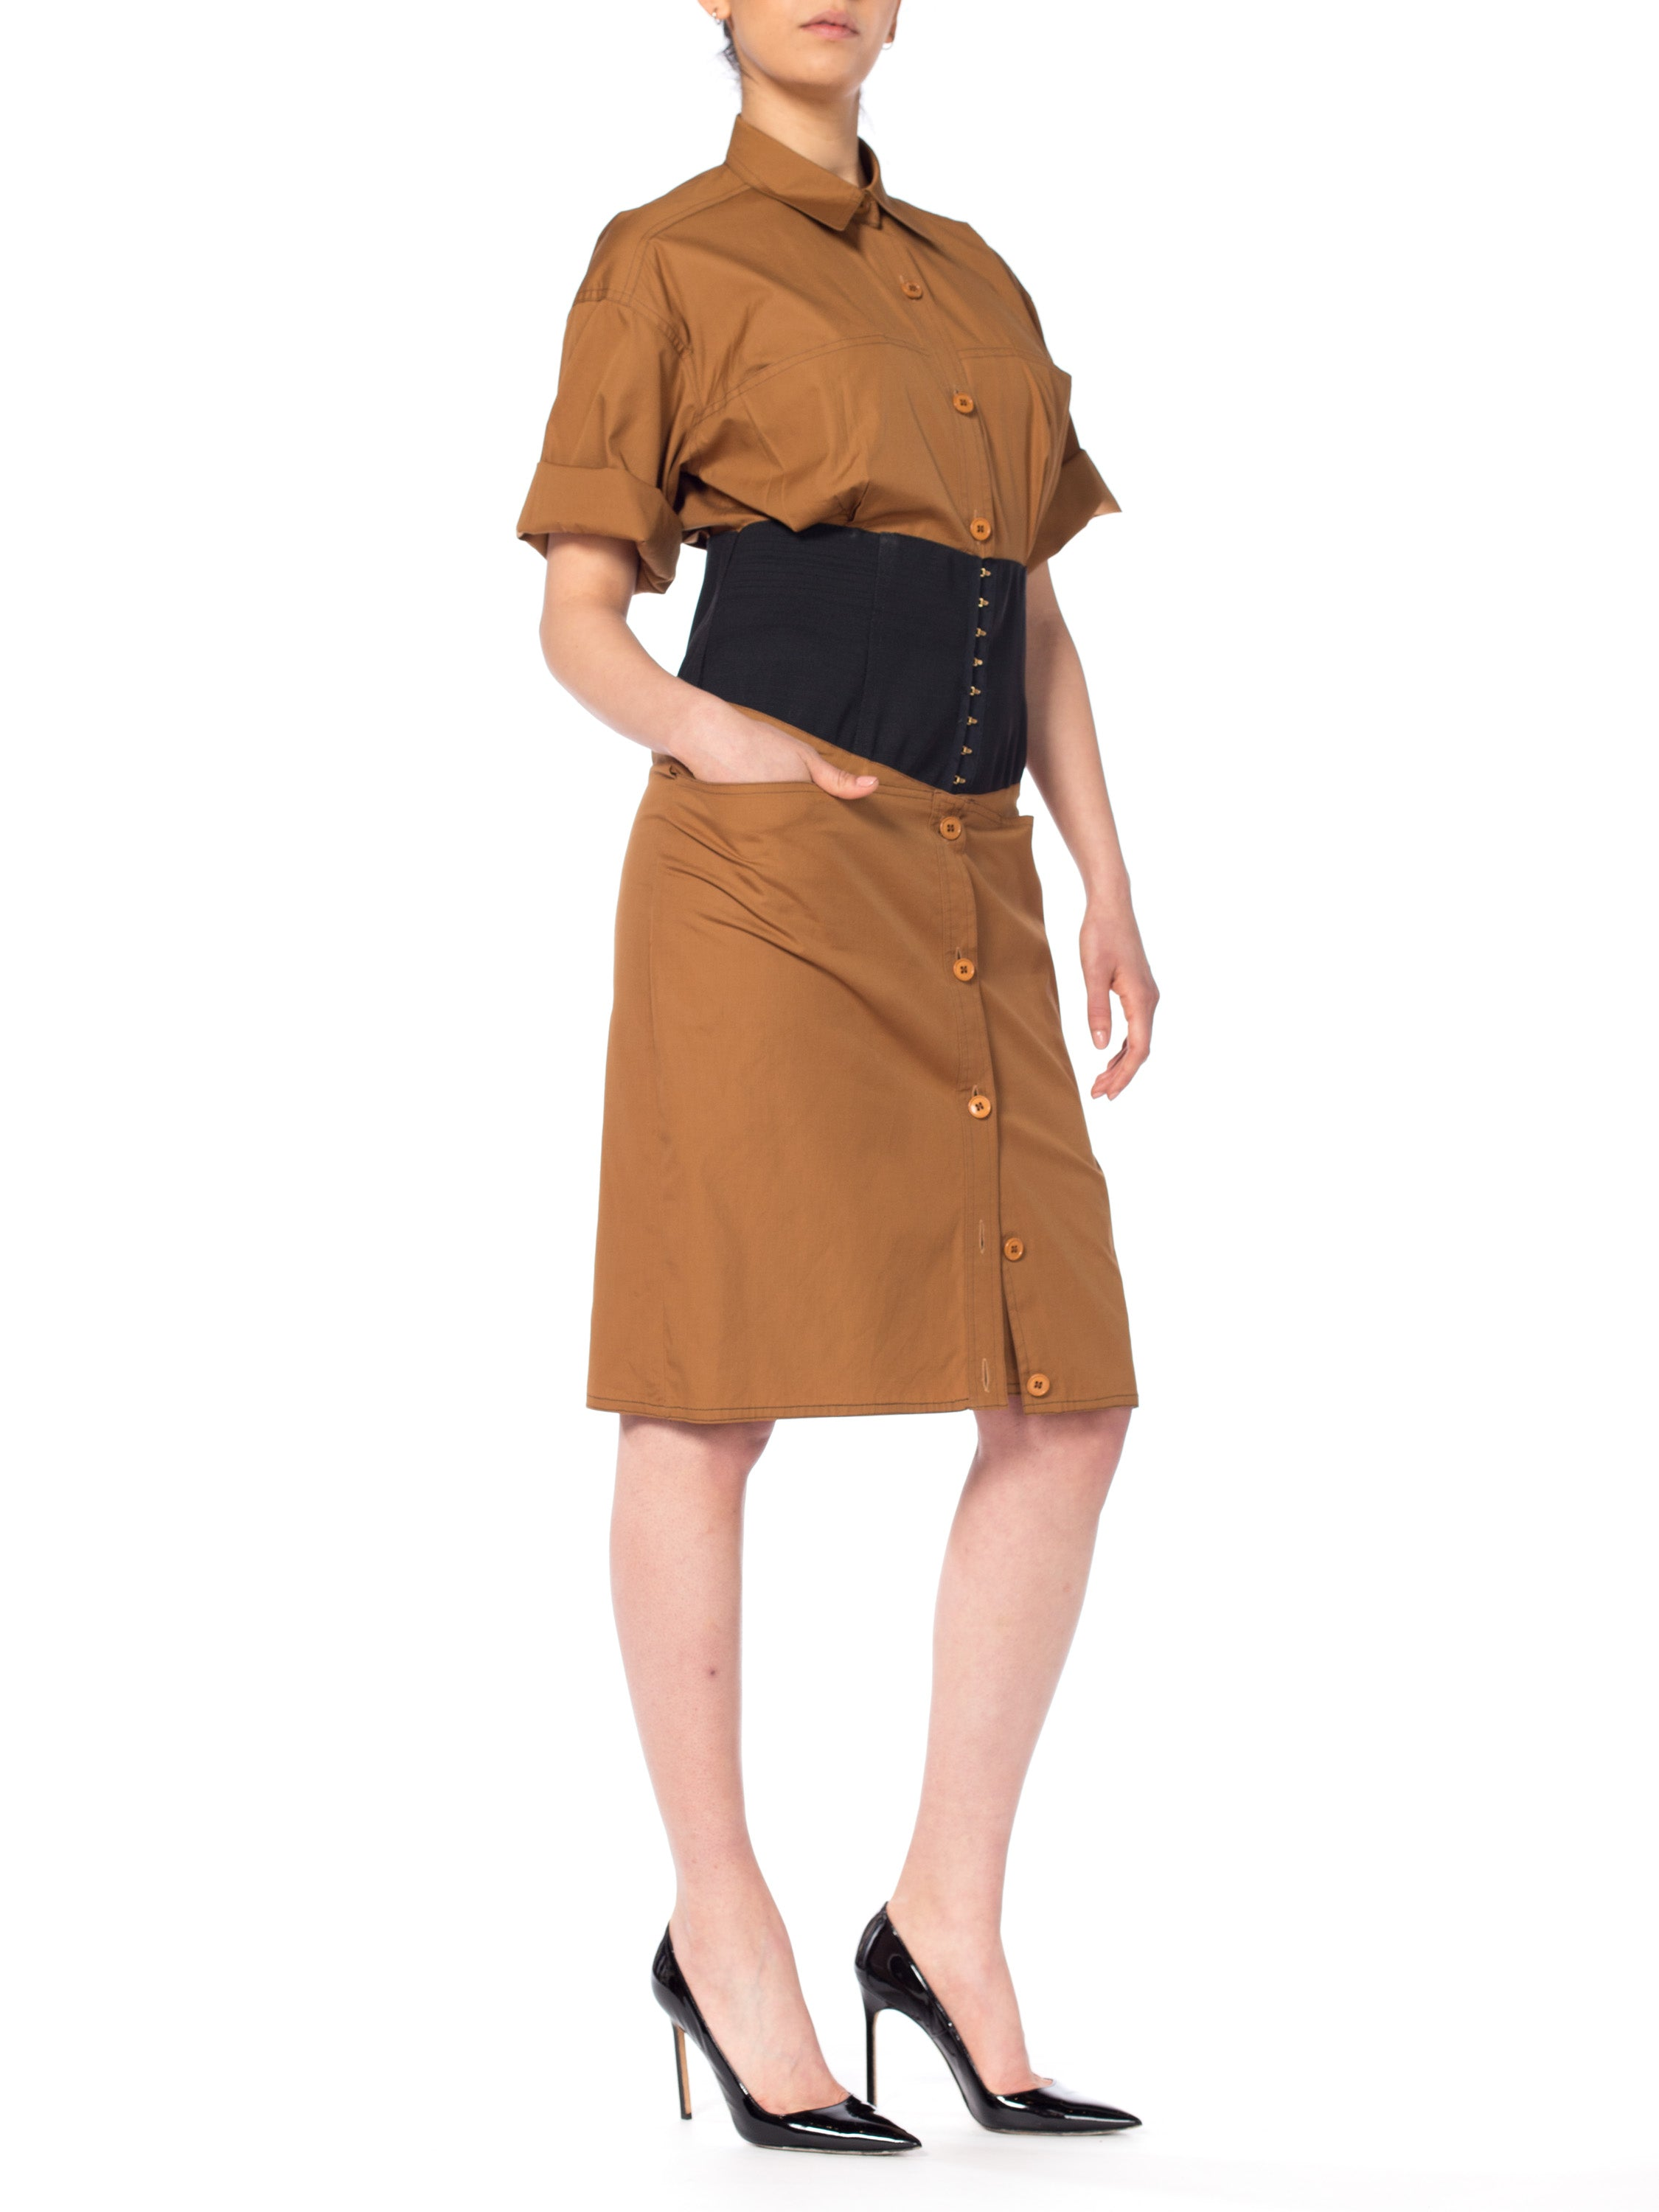 1980S GIANFRANCO FERRE Cinnamon Brown Cotton Poplin Safari Style Shirt Dress With Pockets